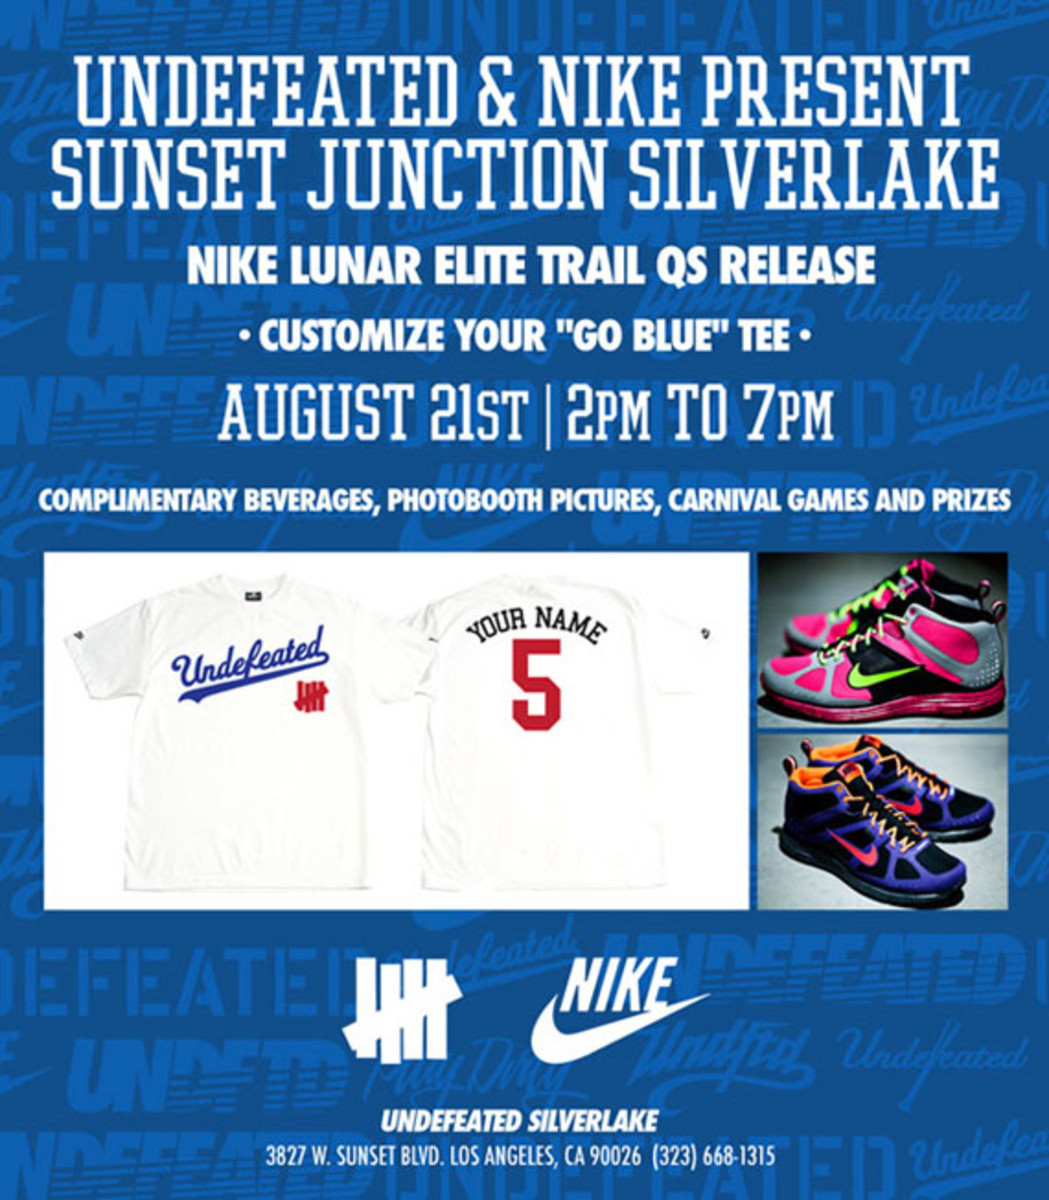 undftd-nike-sunset-junction-party-1